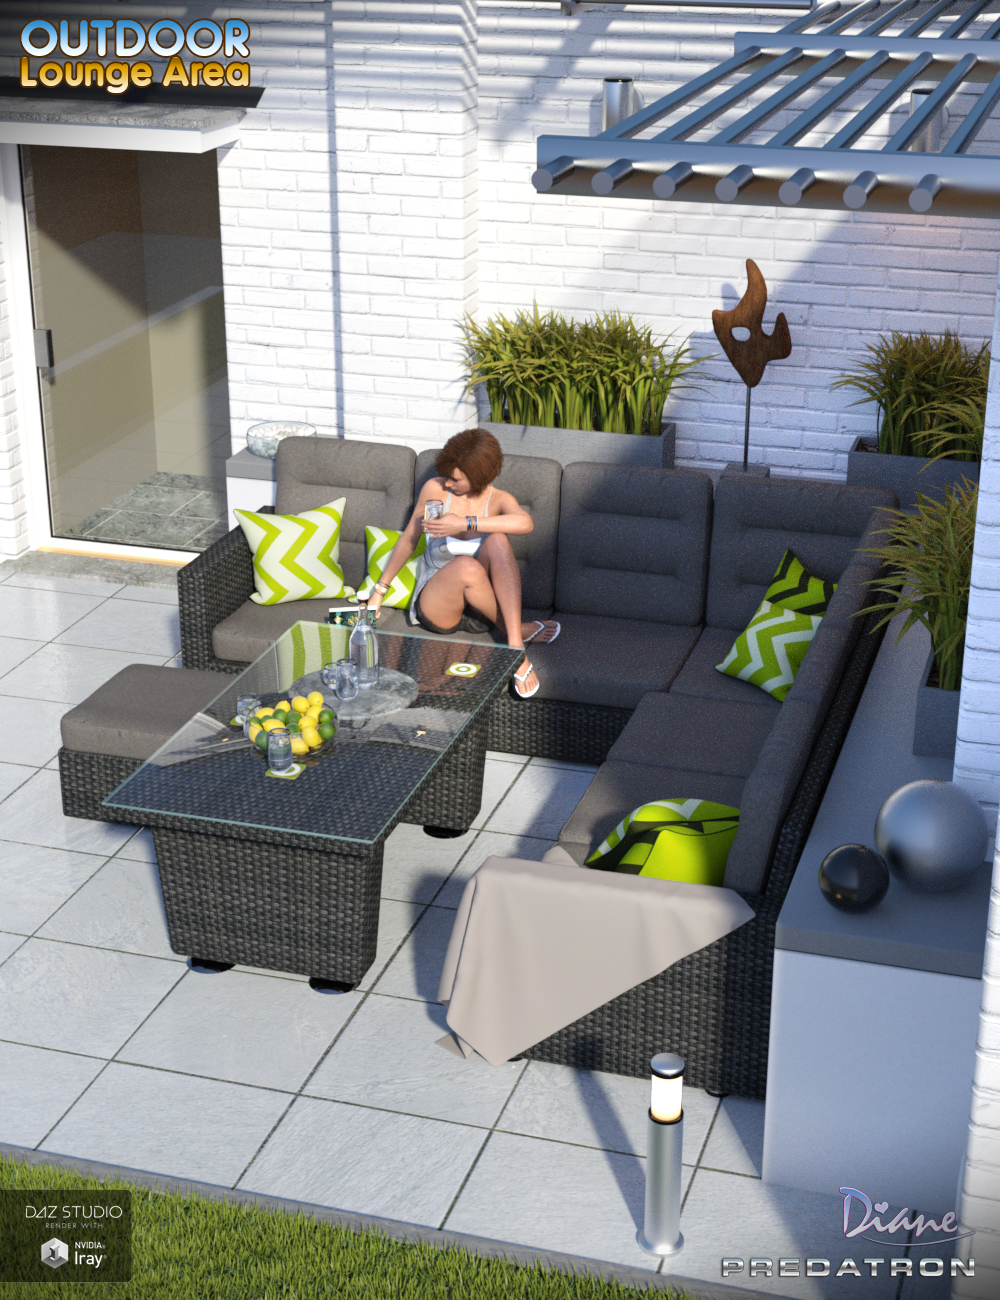 Outdoor Lounge Area by: DianePredatron, 3D Models by Daz 3D